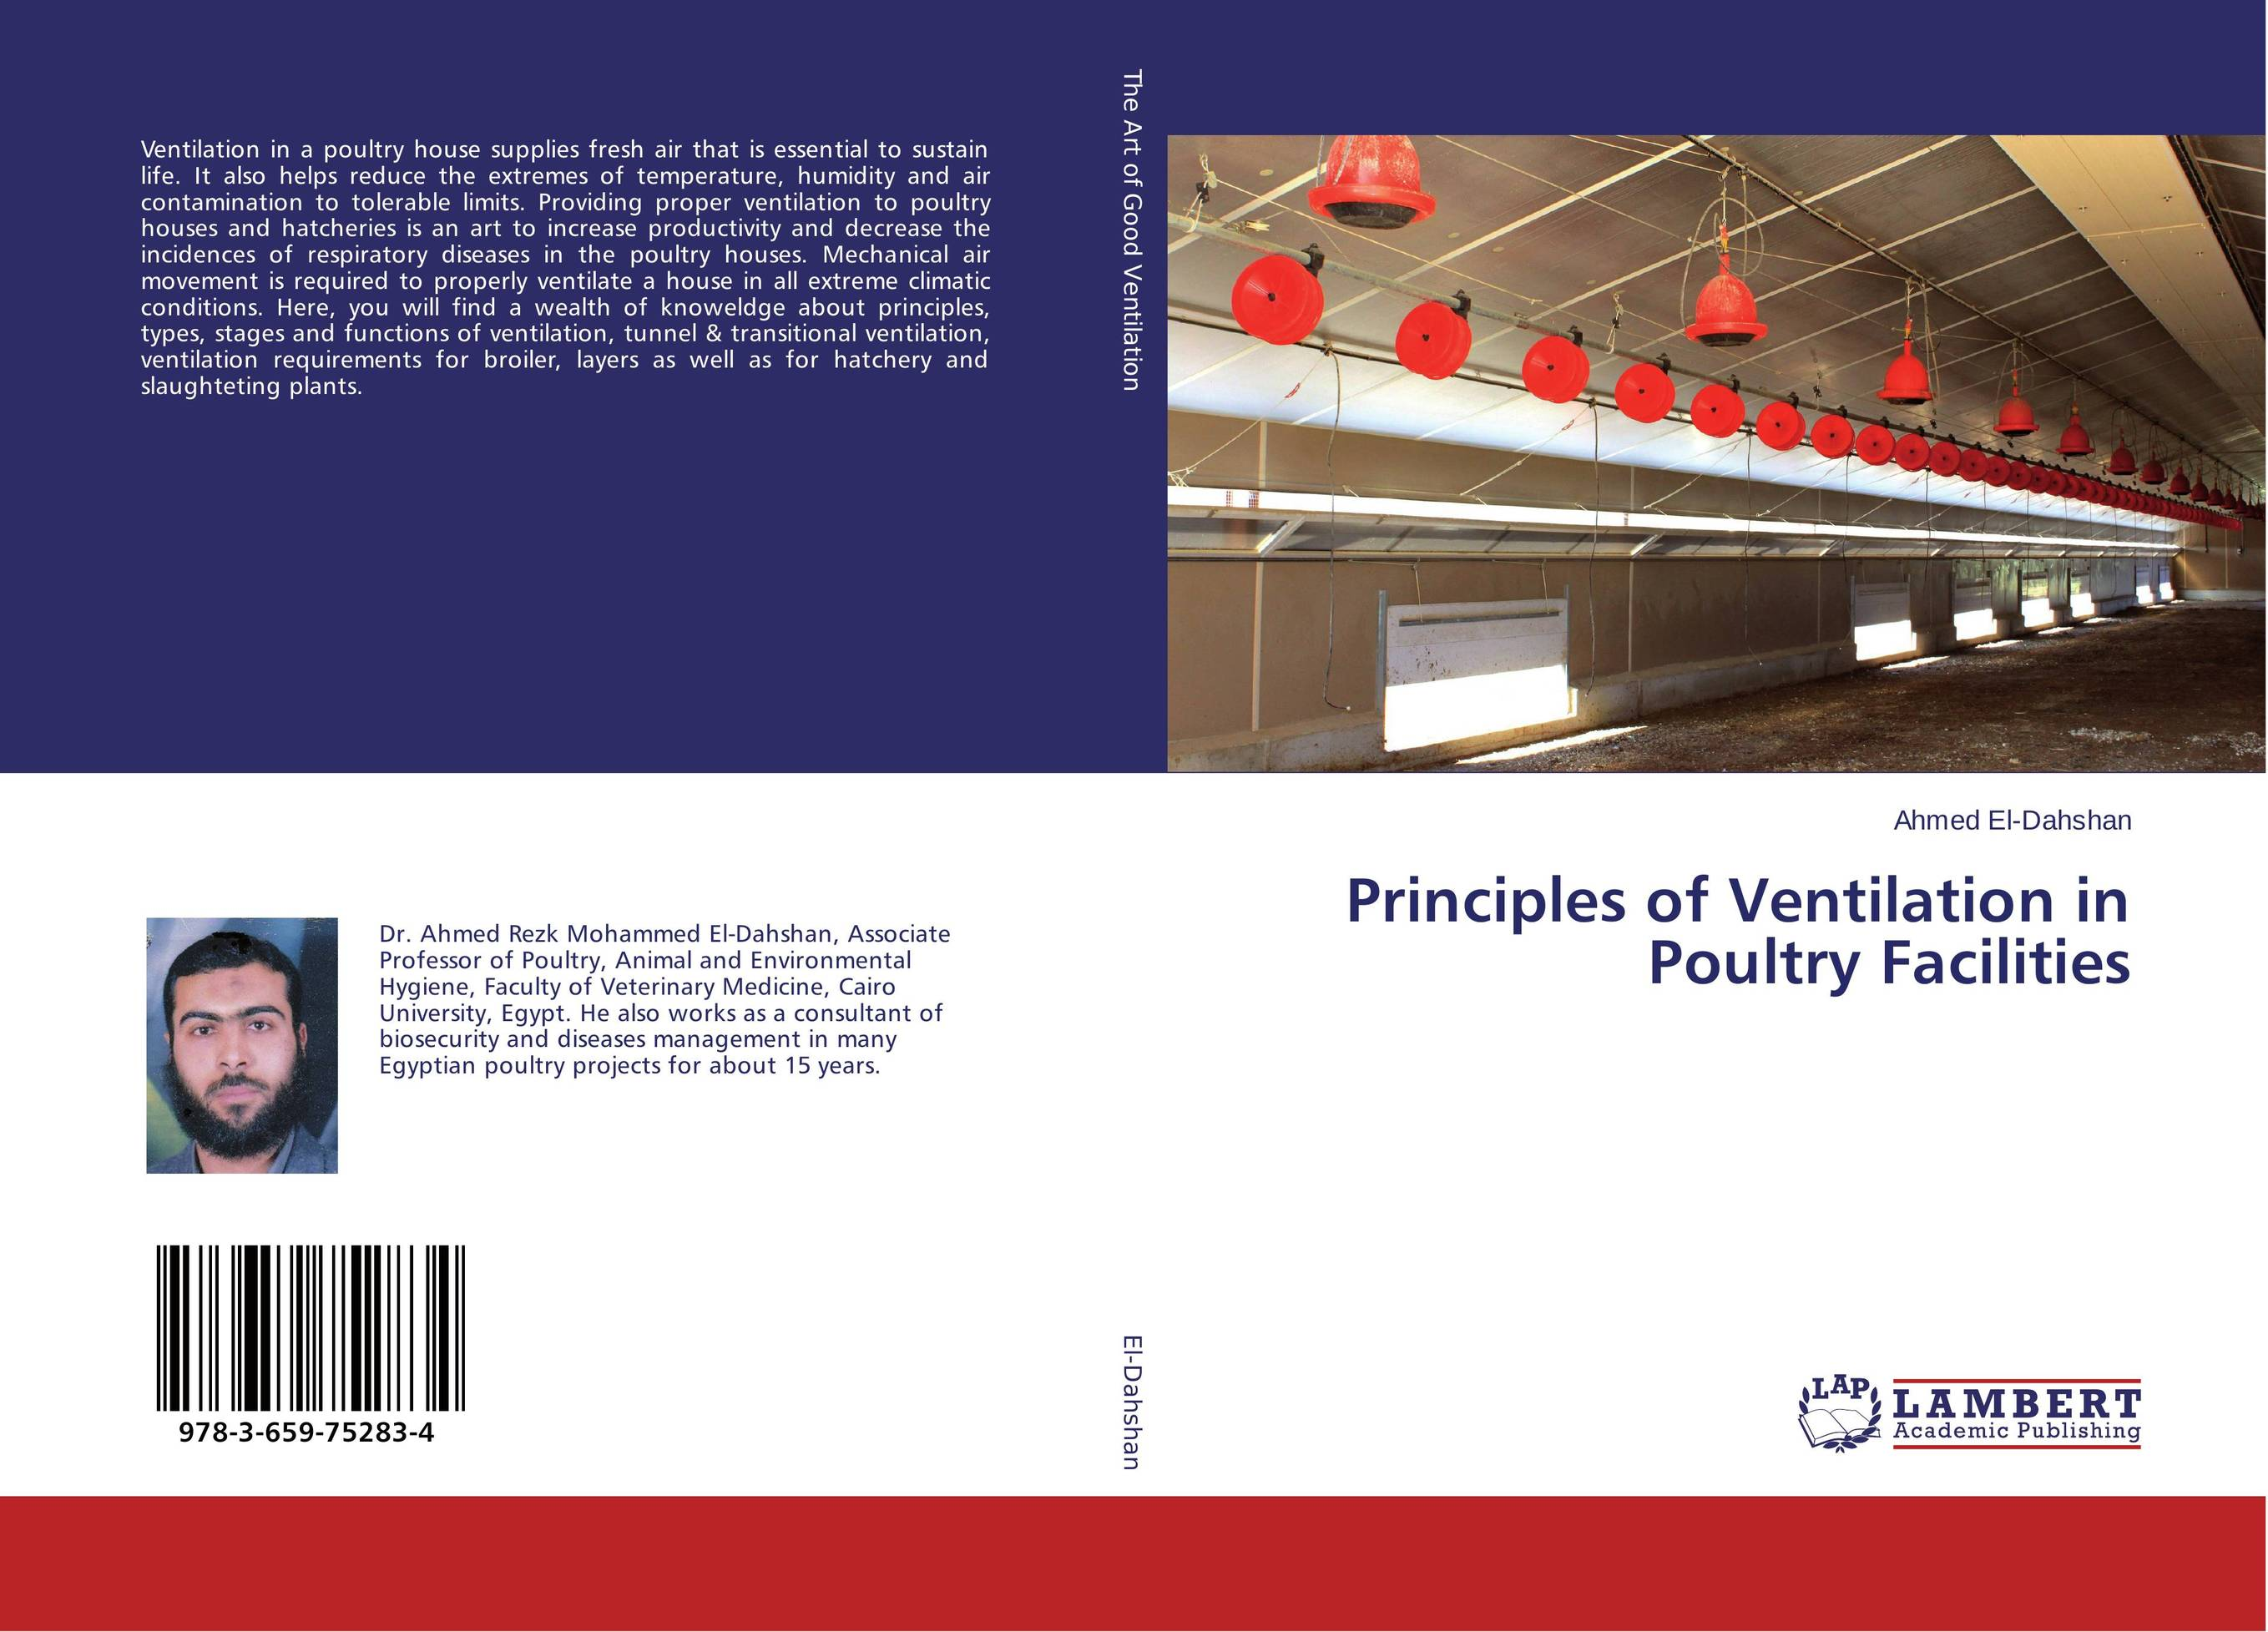 Principles of Ventilation in Poultry Facilities